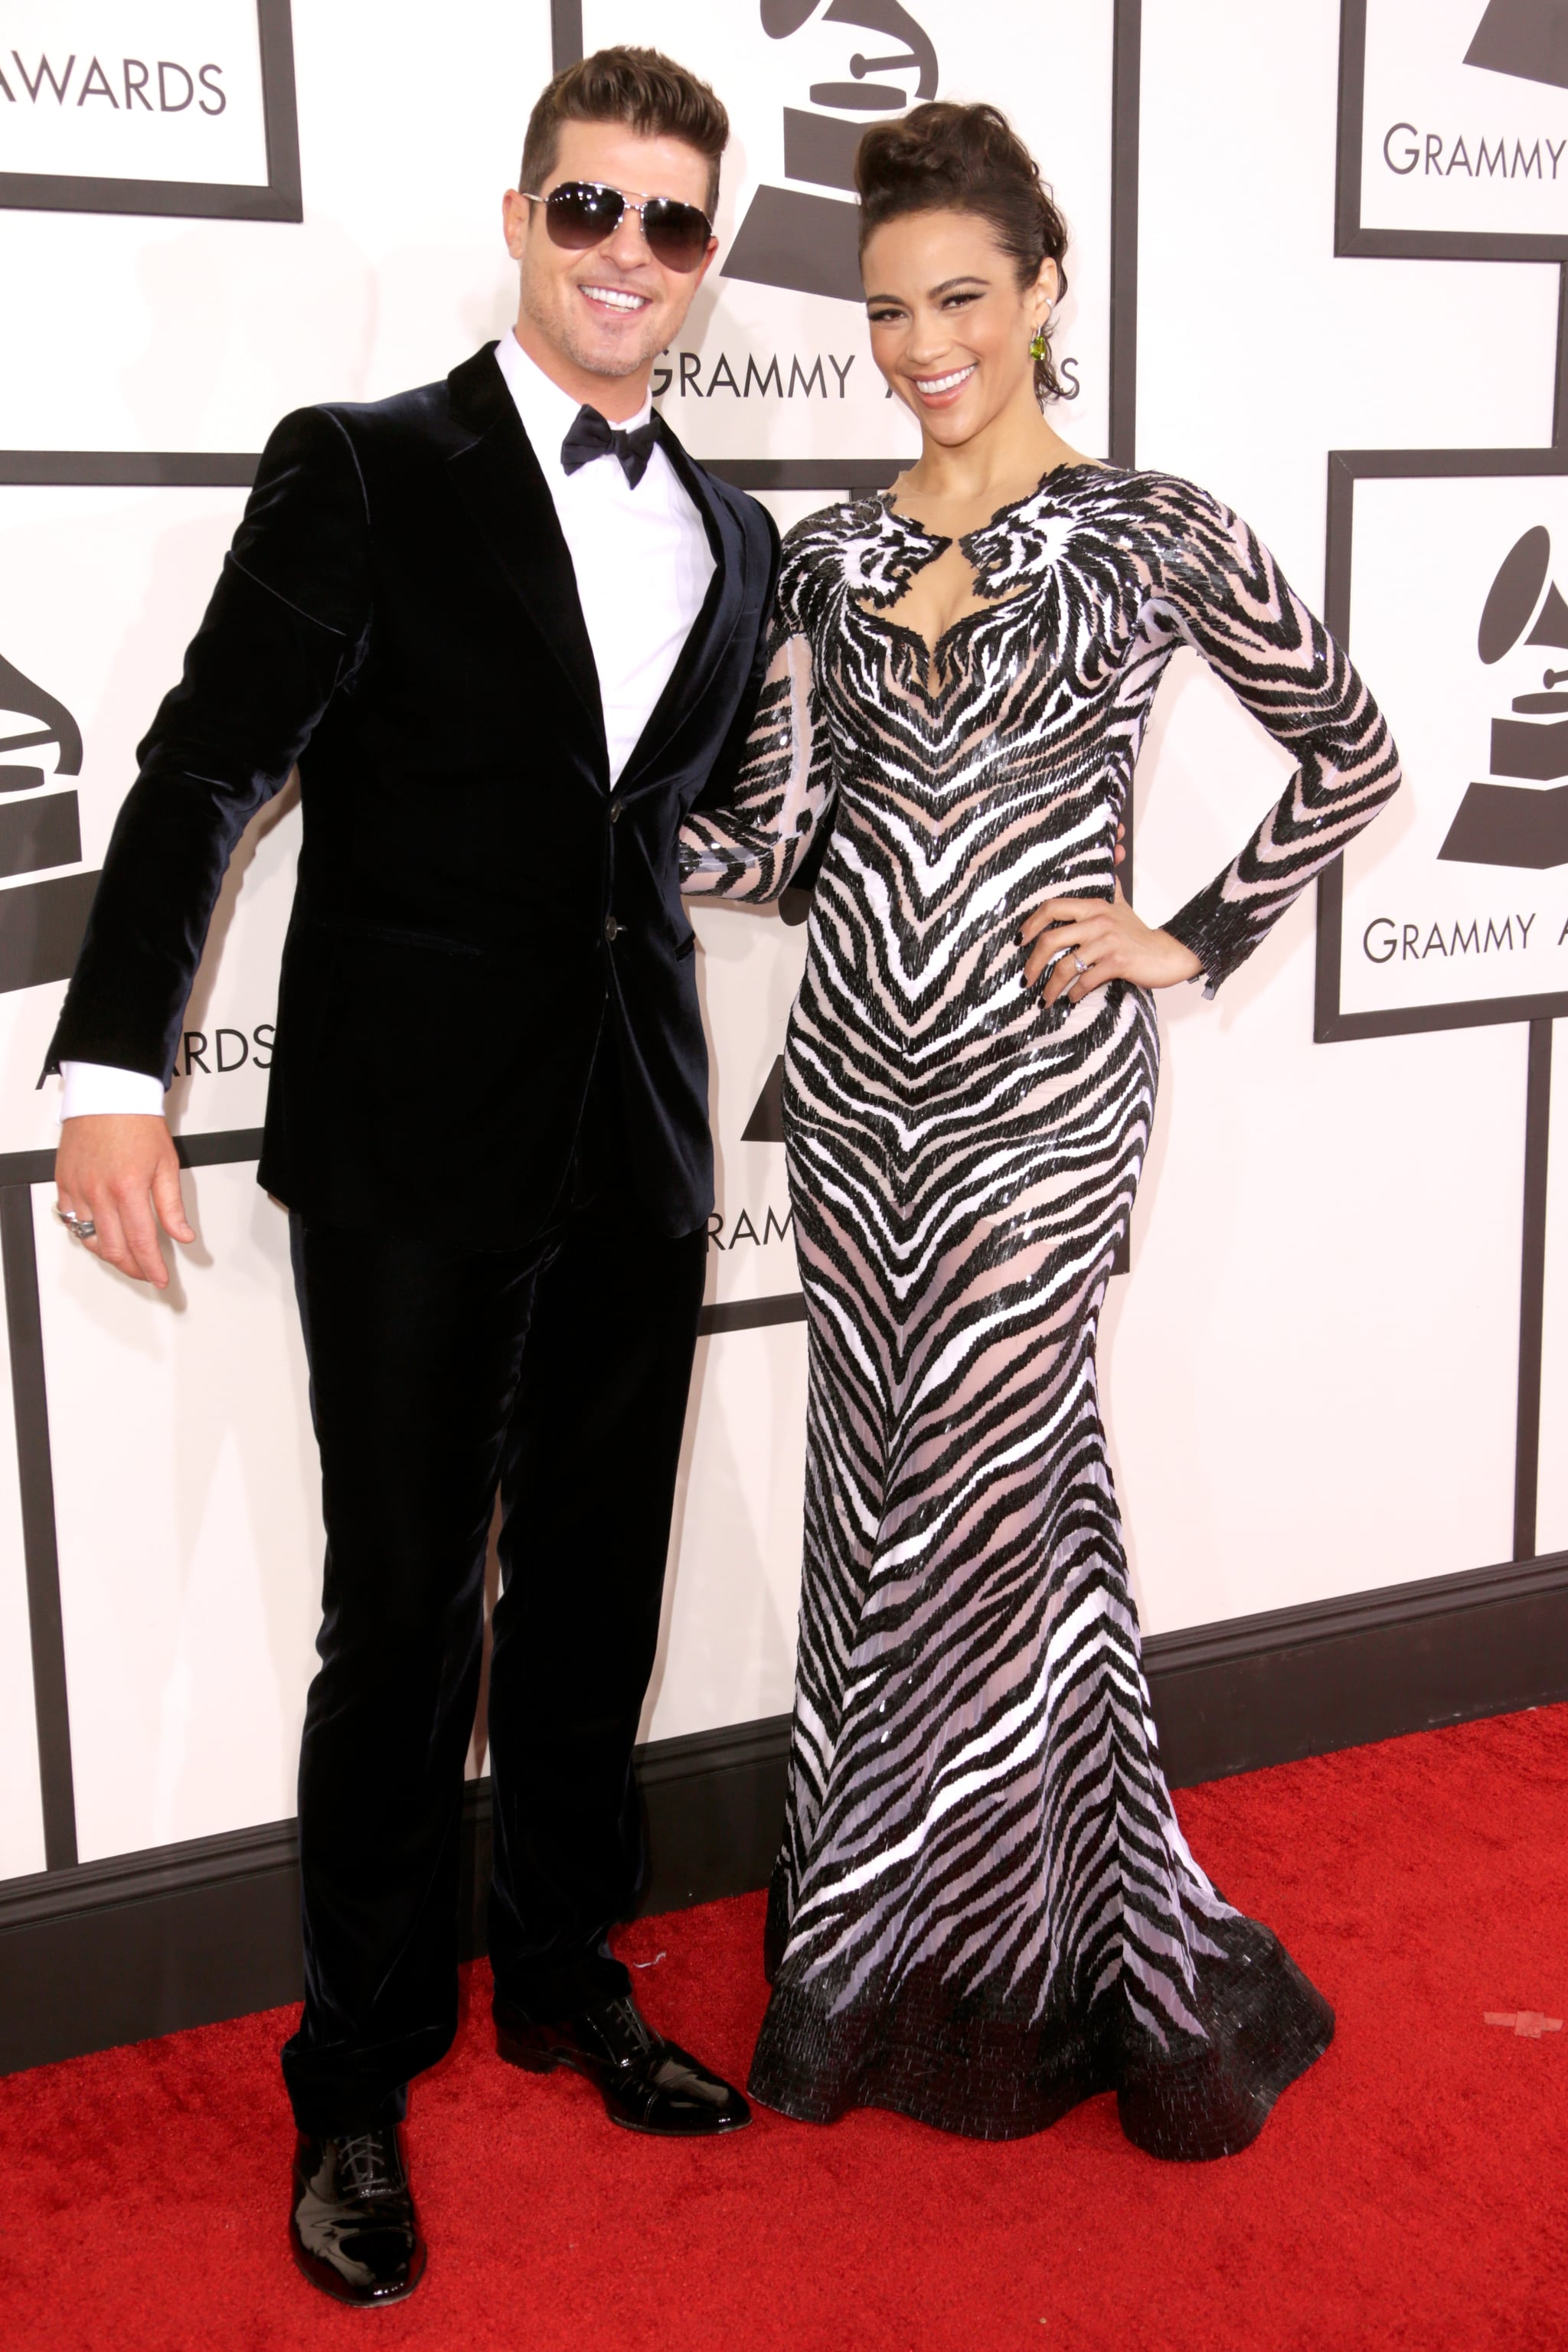 Robin Thicke and Paula Patton were all smiles at the Grammys.